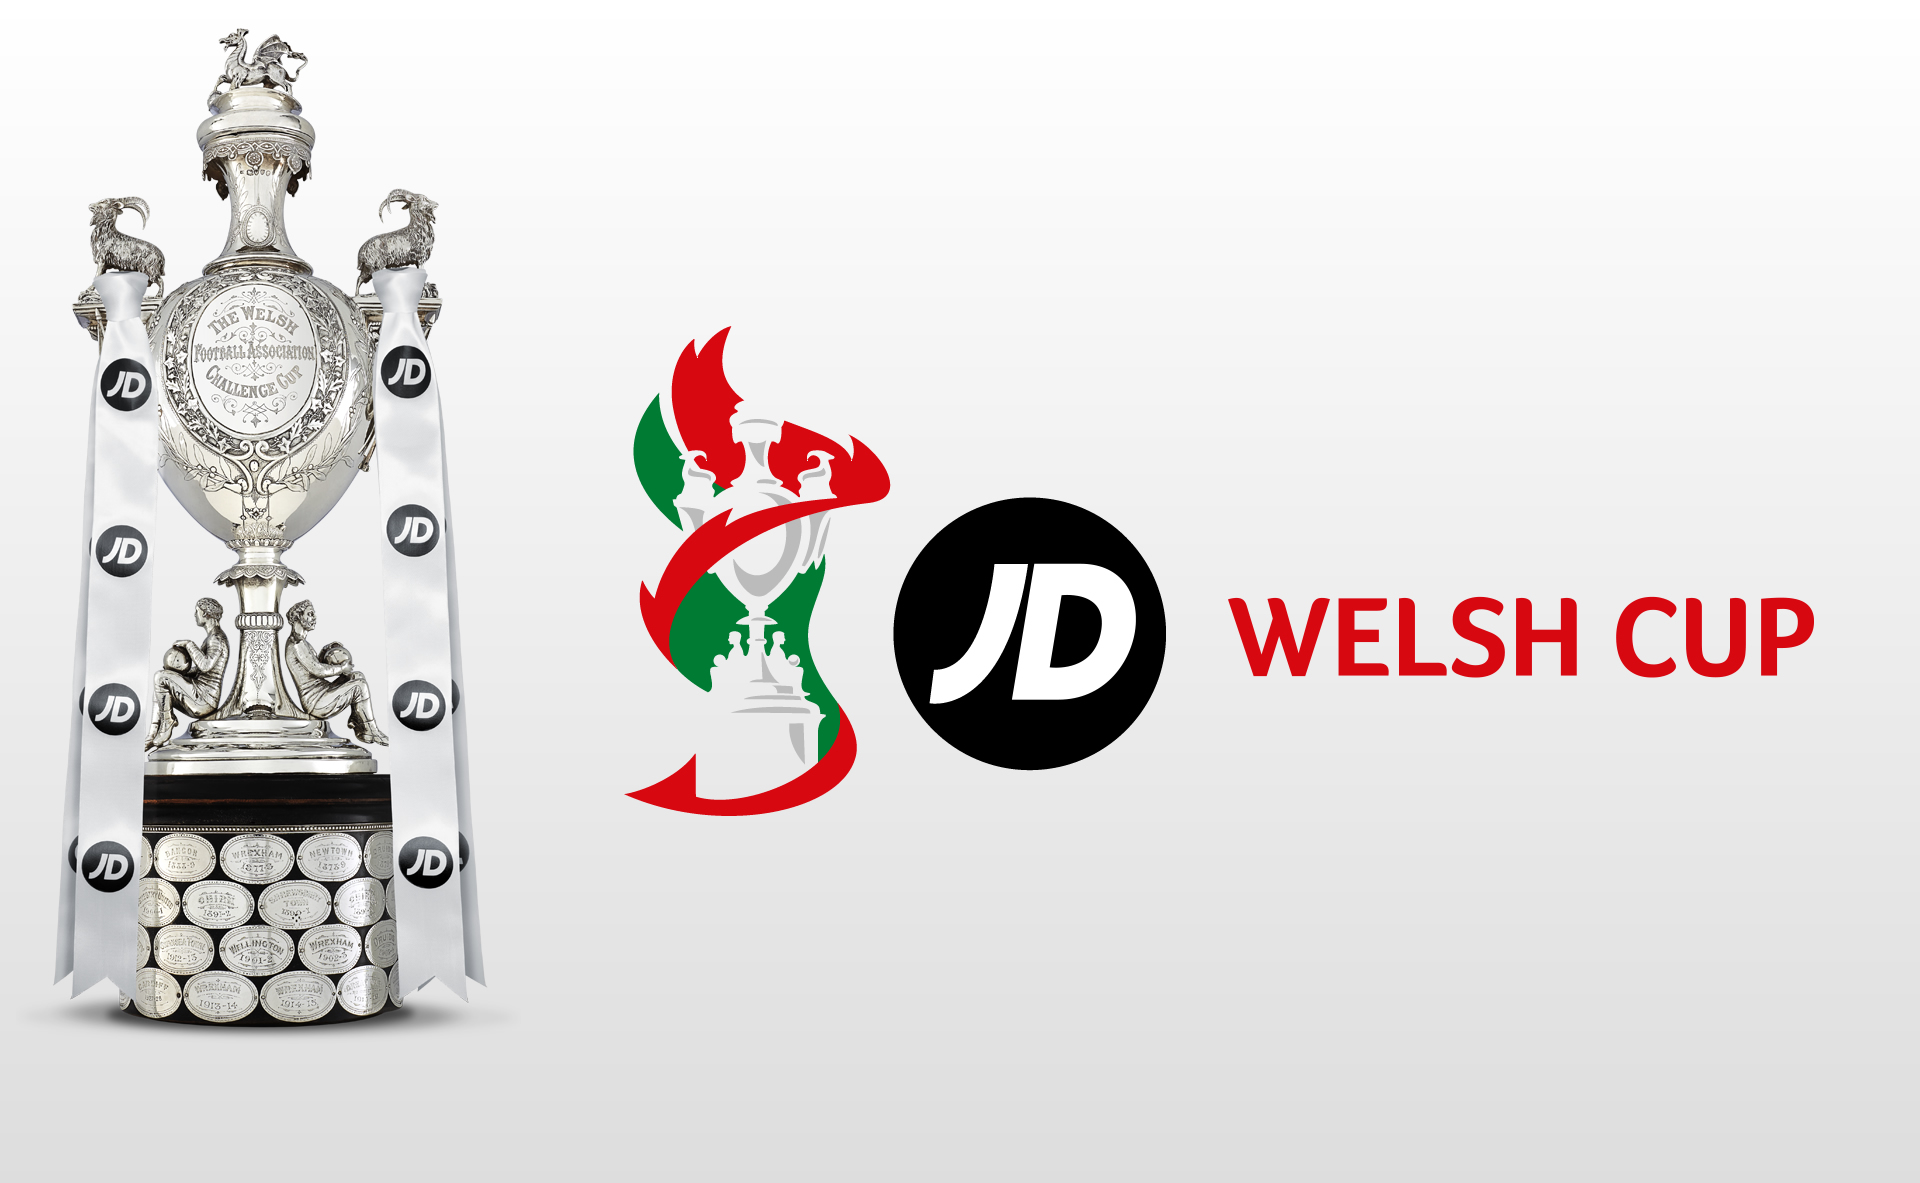 JD Welsh Cup 2017-18